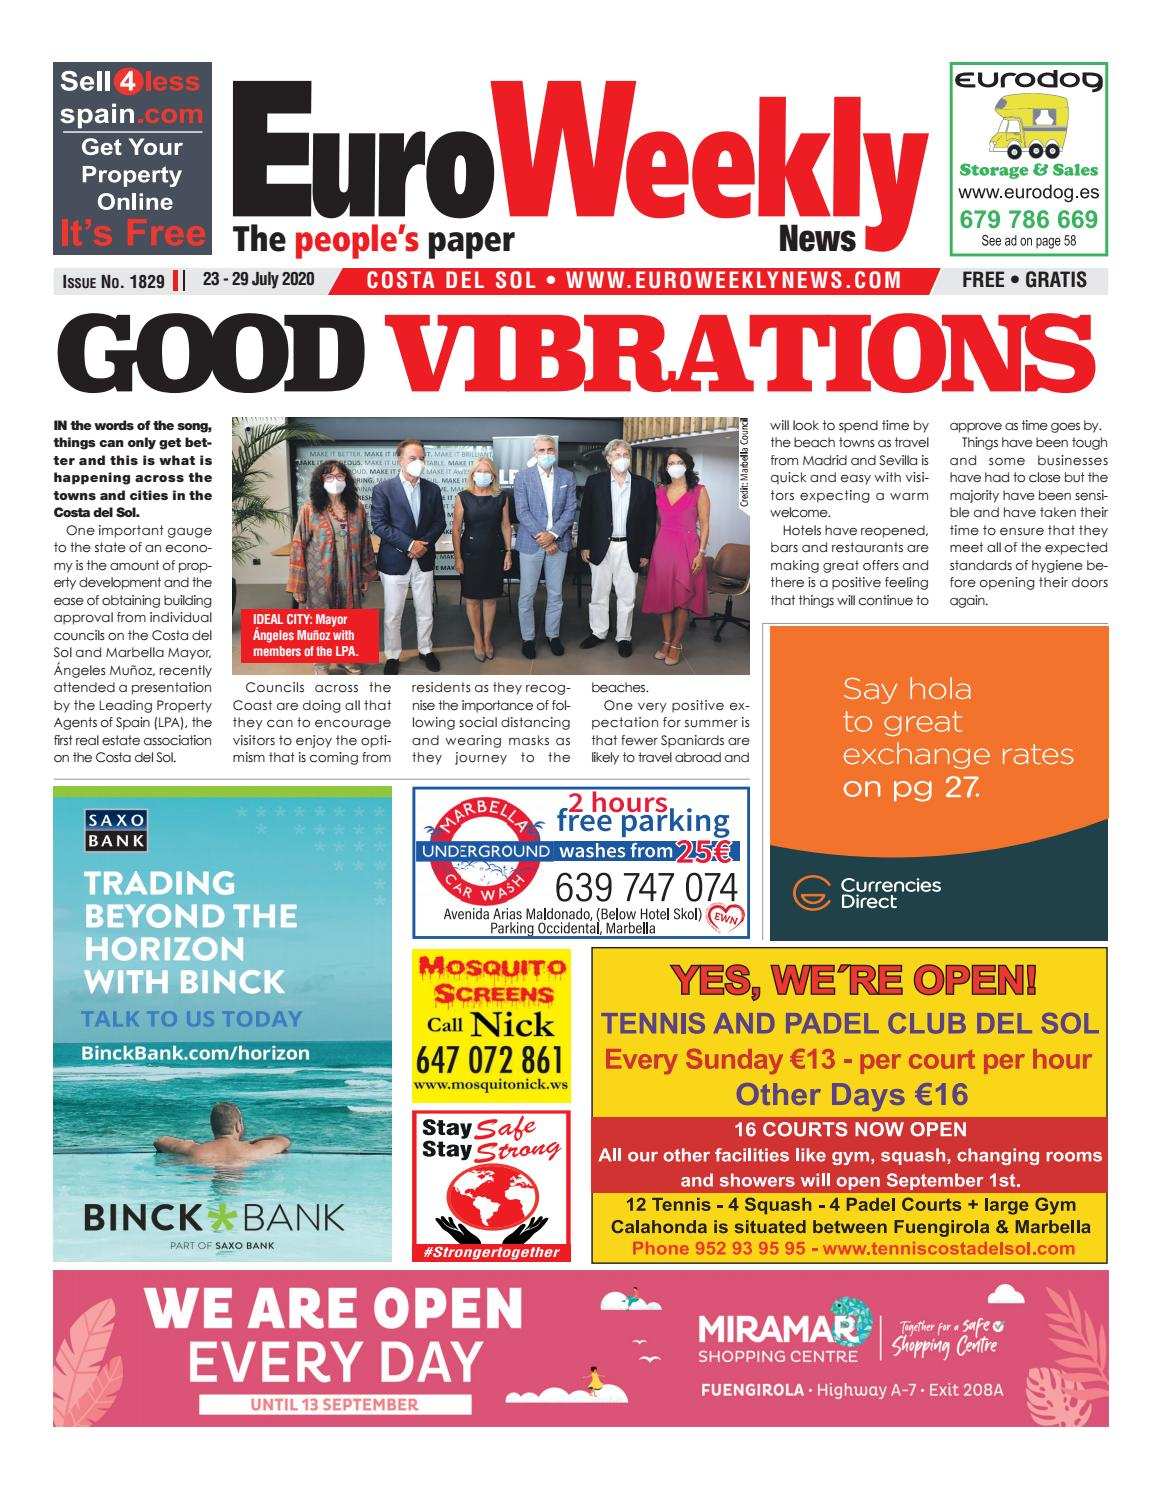 Euro Weekly News - Costa del Sol 9 - 9 July 9 Issue 189 by